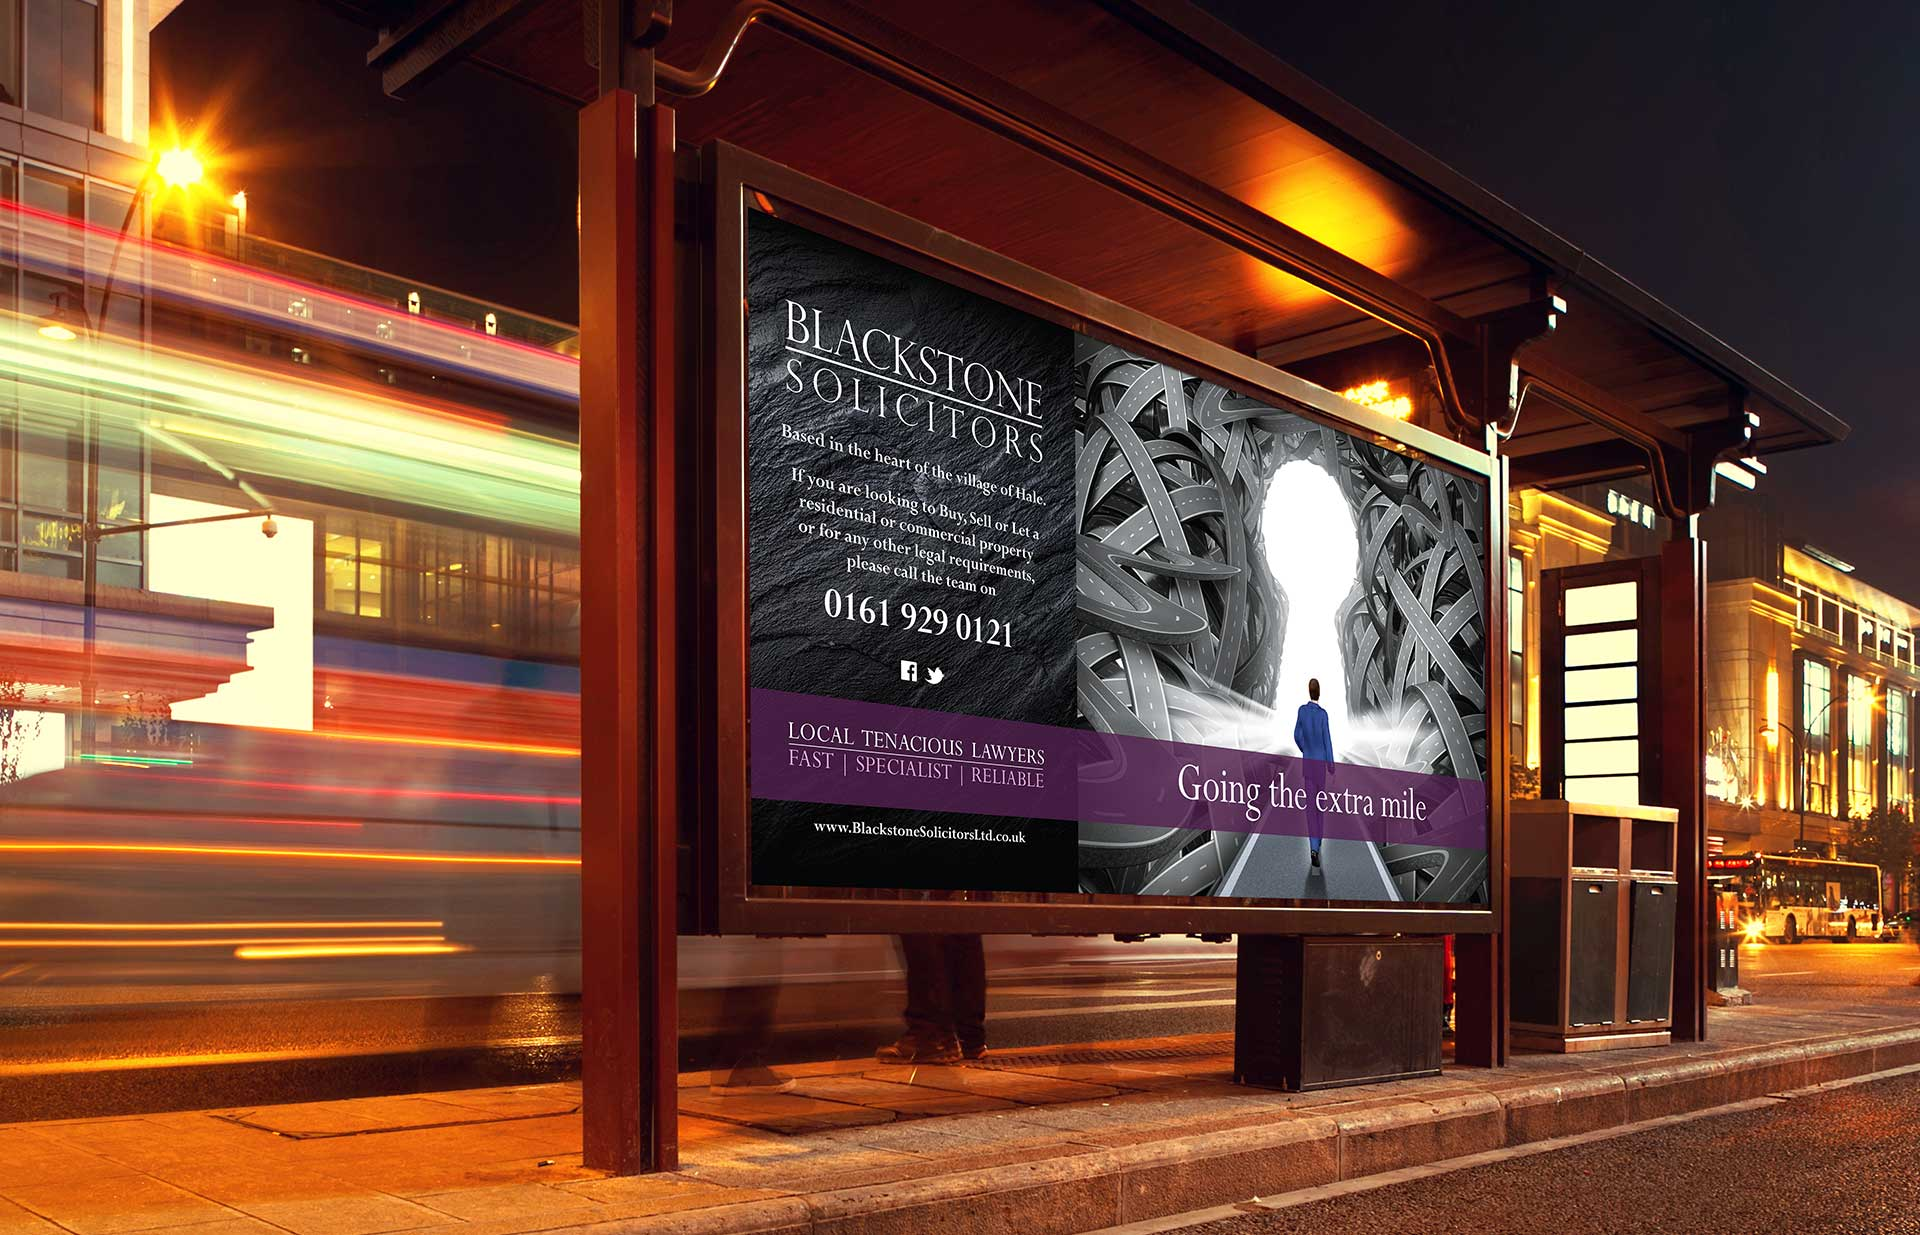 Blackstone billboard poster by Twistedgifted